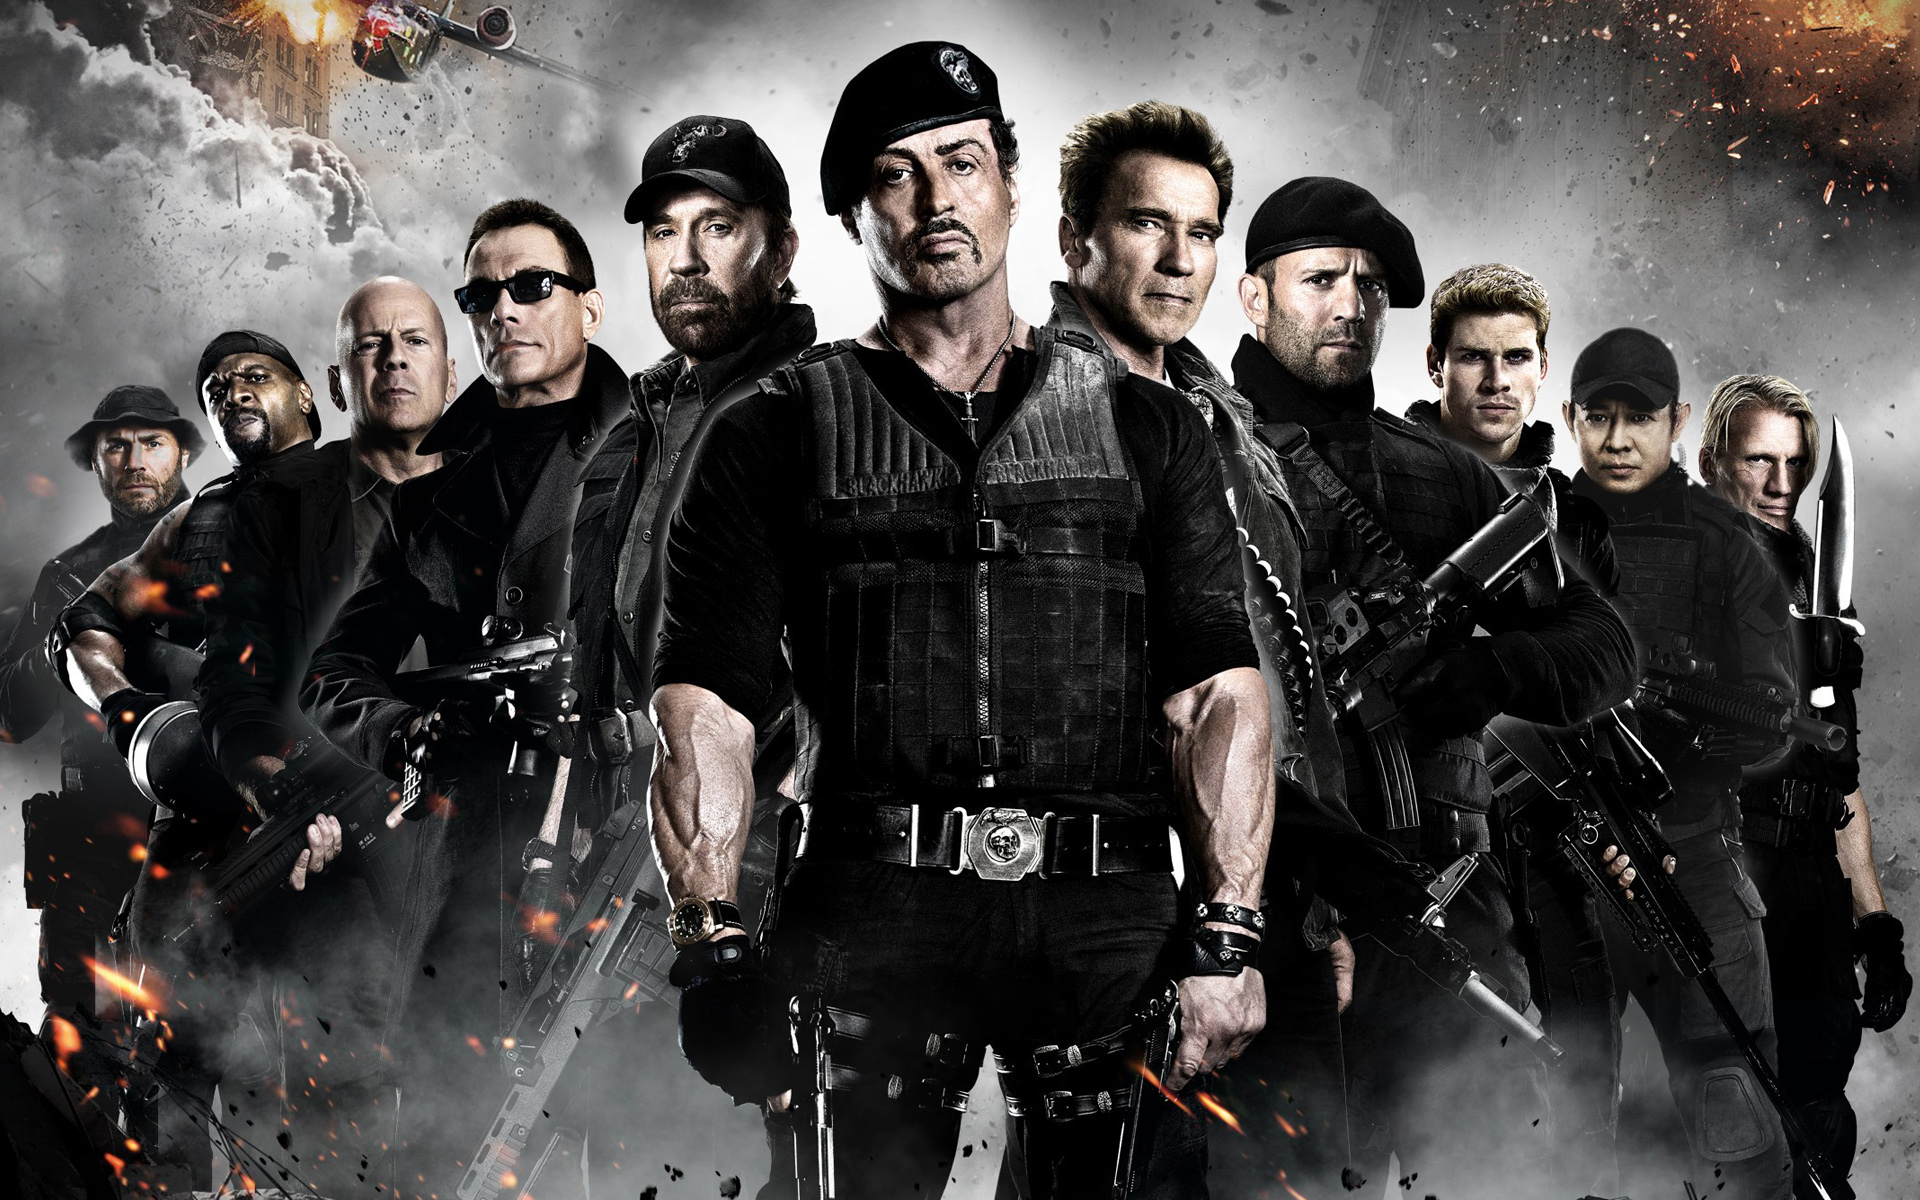 The Expendables Triology